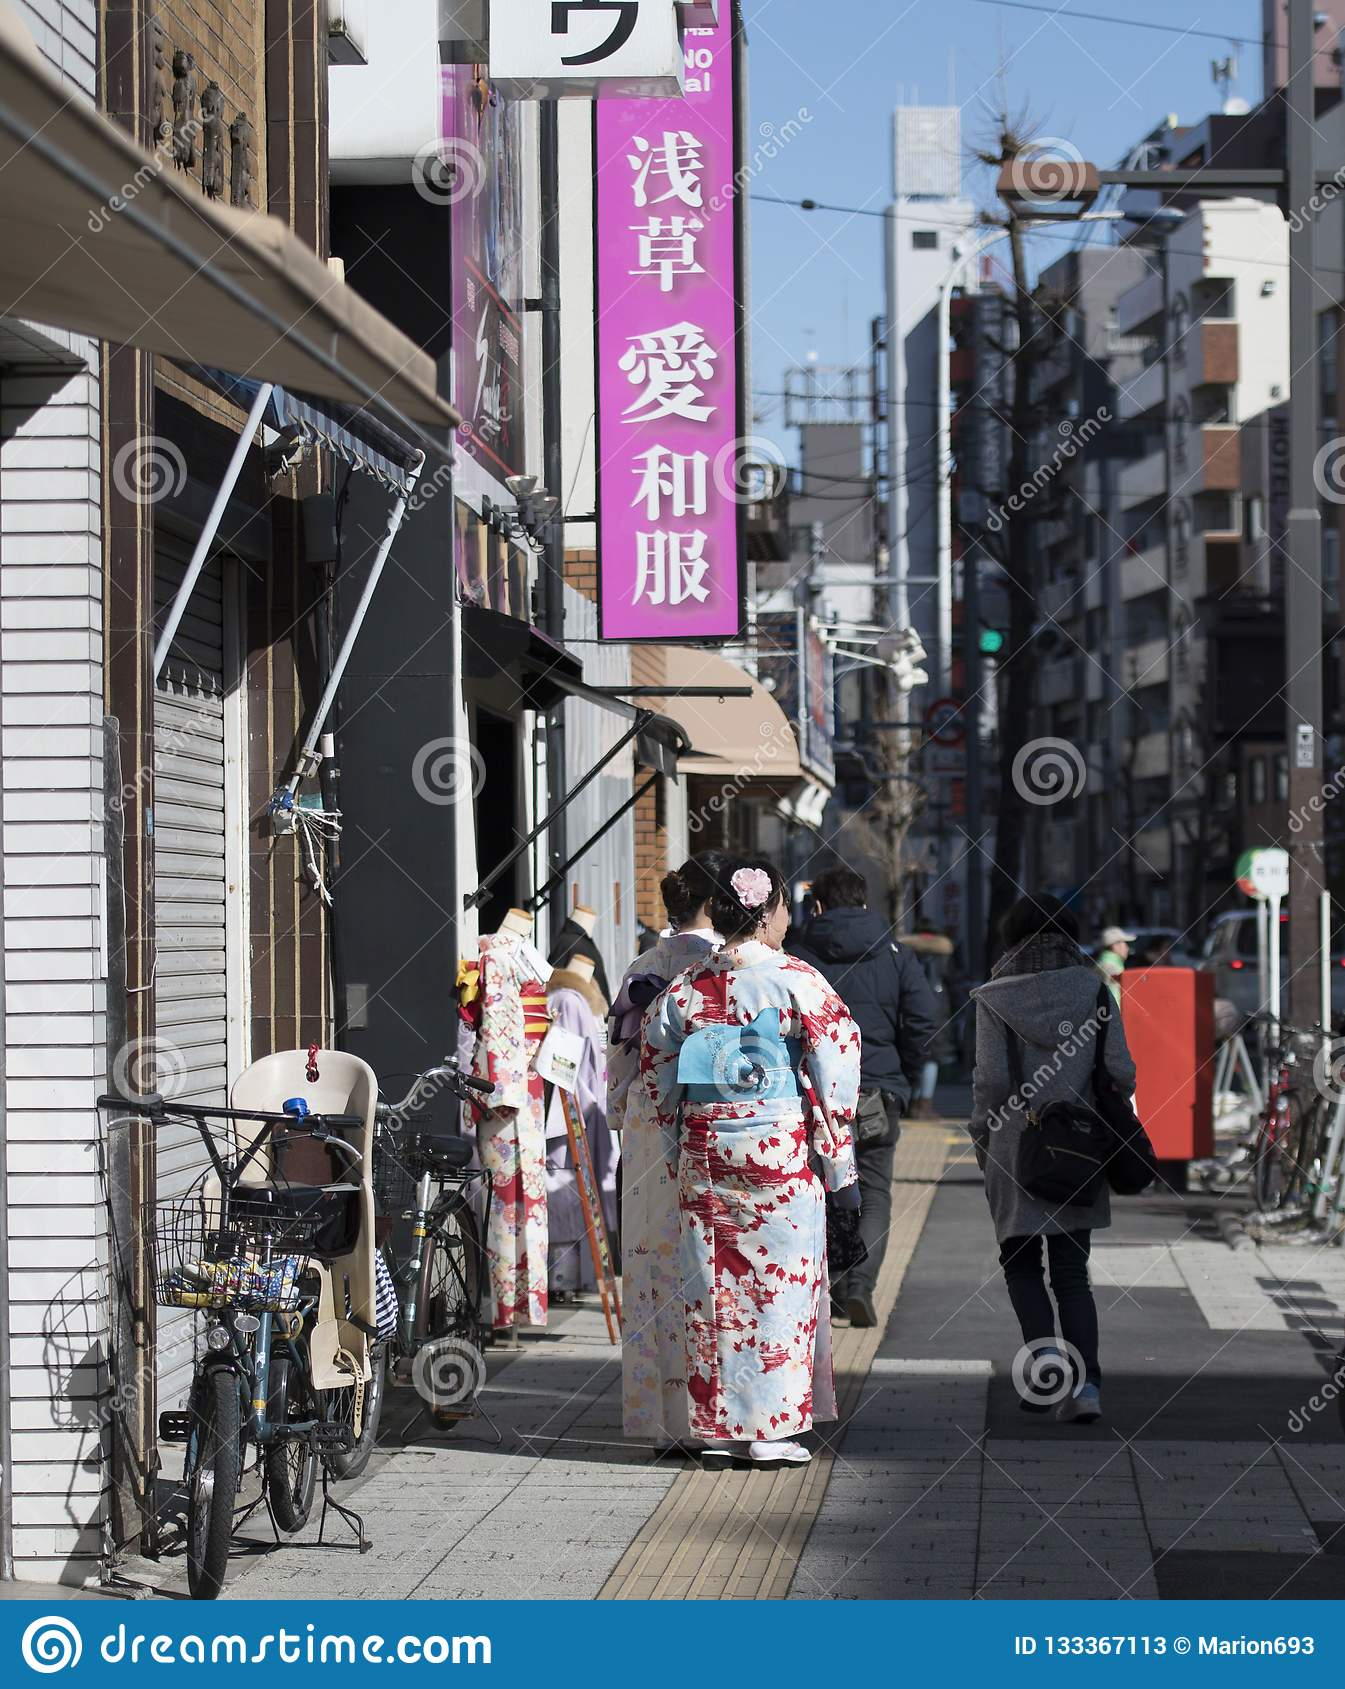 Japanese urban street scene with women dressed in Kimonos